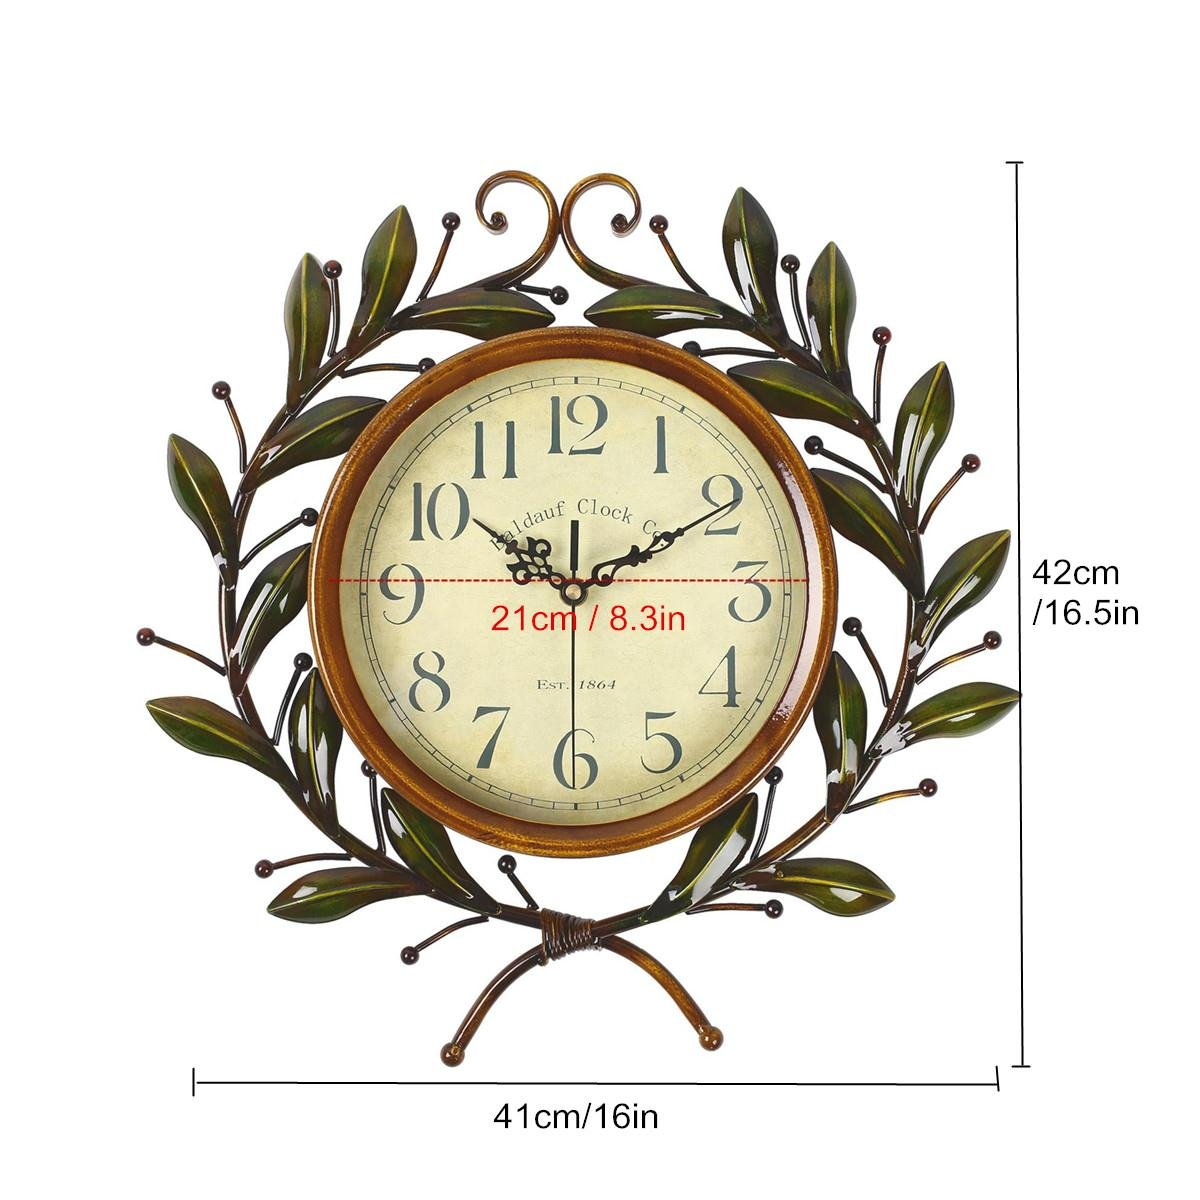 Soledi Vintage Wall Clock Classic Silent Non-ticking For Home Decoration Olive Branch Design 1